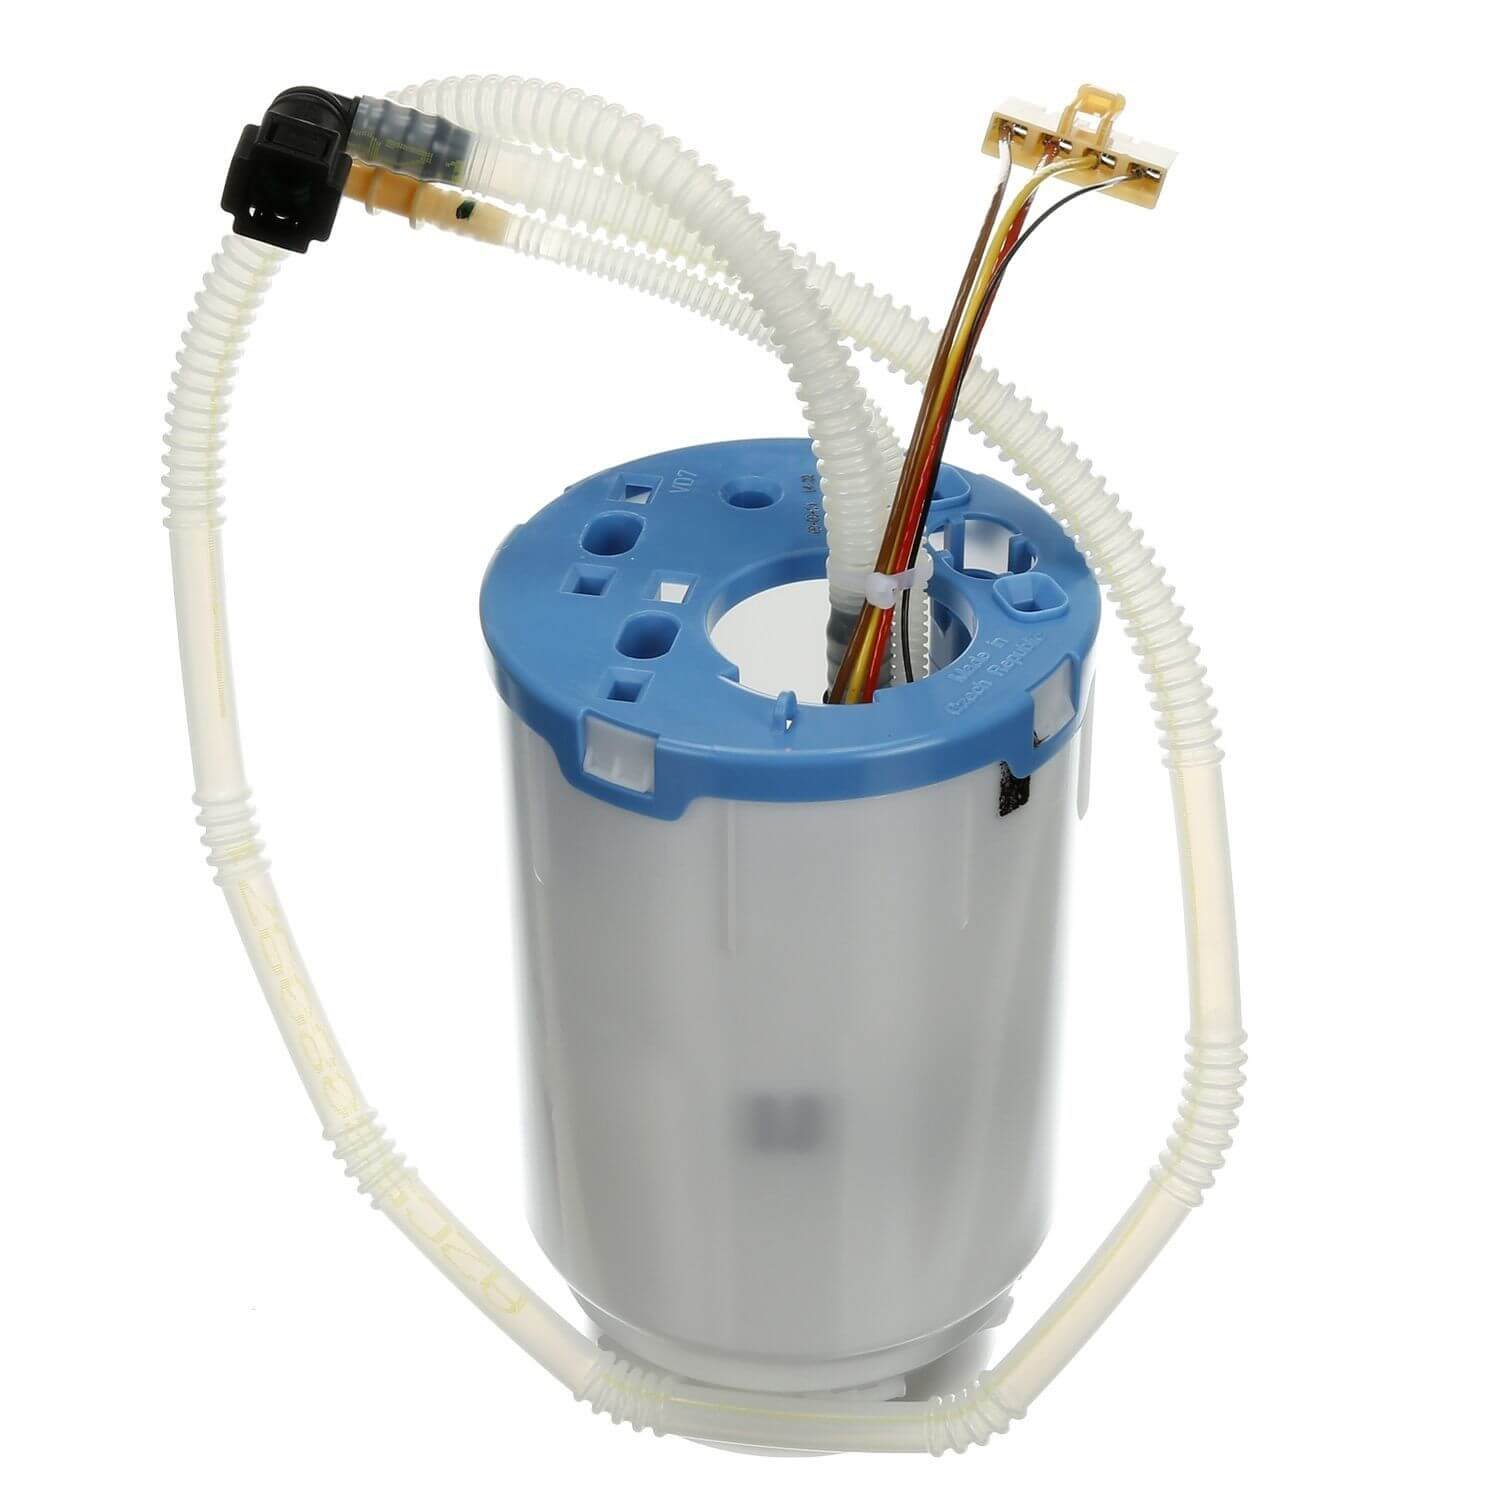 hight resolution of volkswagen fuel pump assembly 7p0 919 087